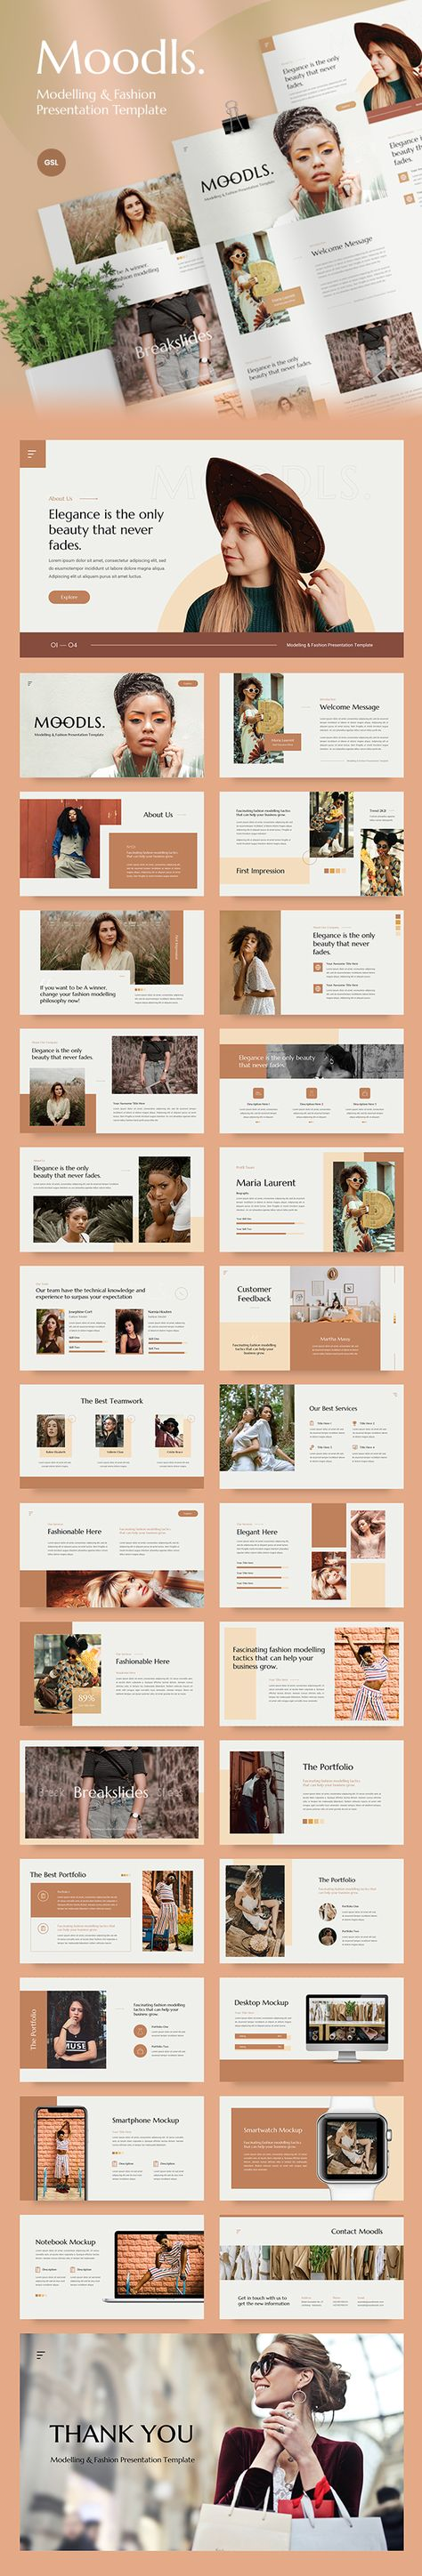 Moodls - Modelling & Fashion Google Slides Template